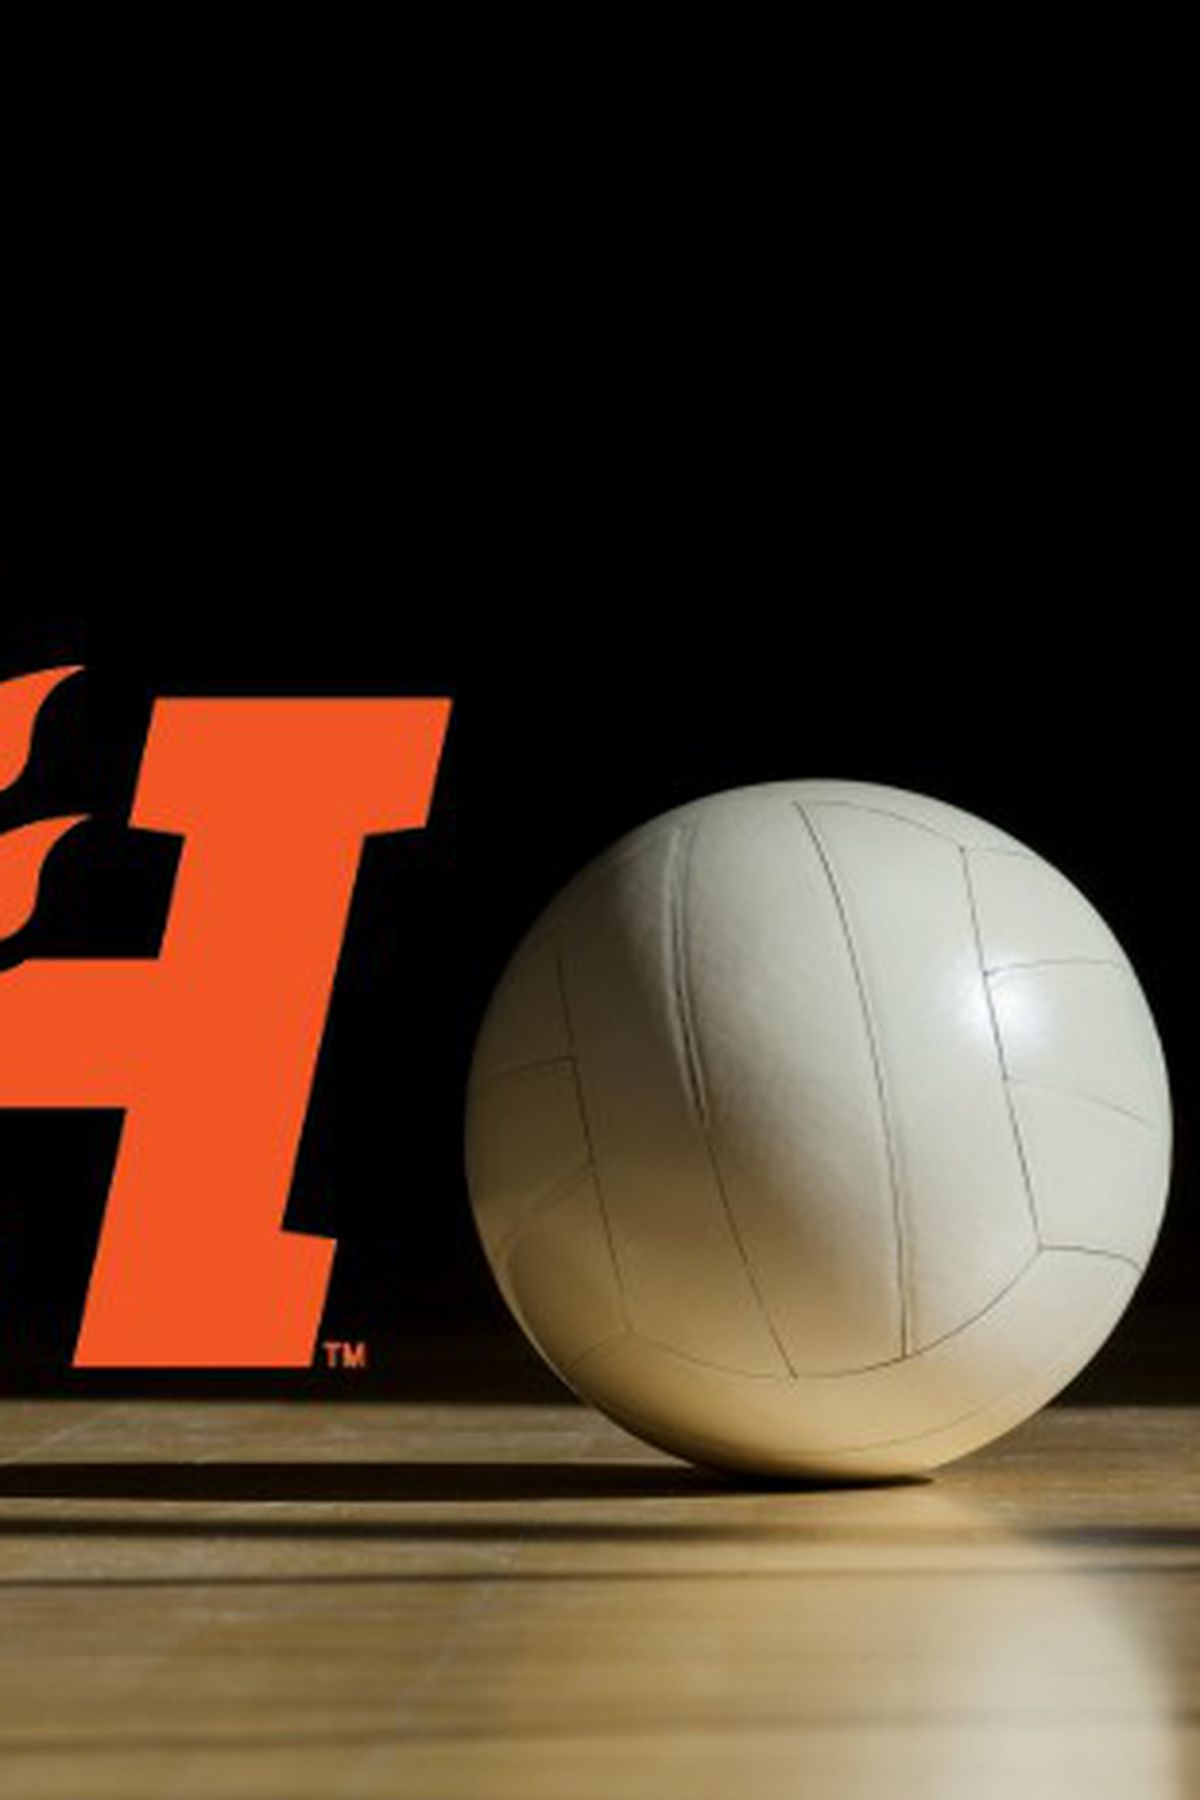 SHSU Volleyball: SLC Finalizes Spring 2021 Schedule